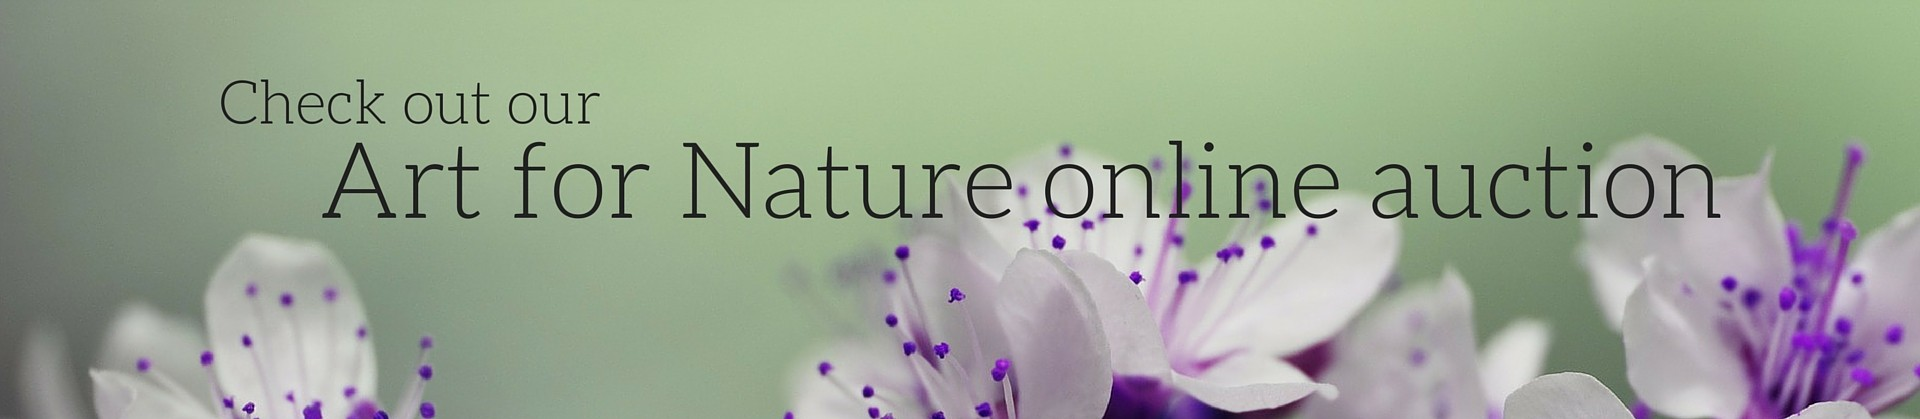 Art-for-Nature-web-slider-1920x419